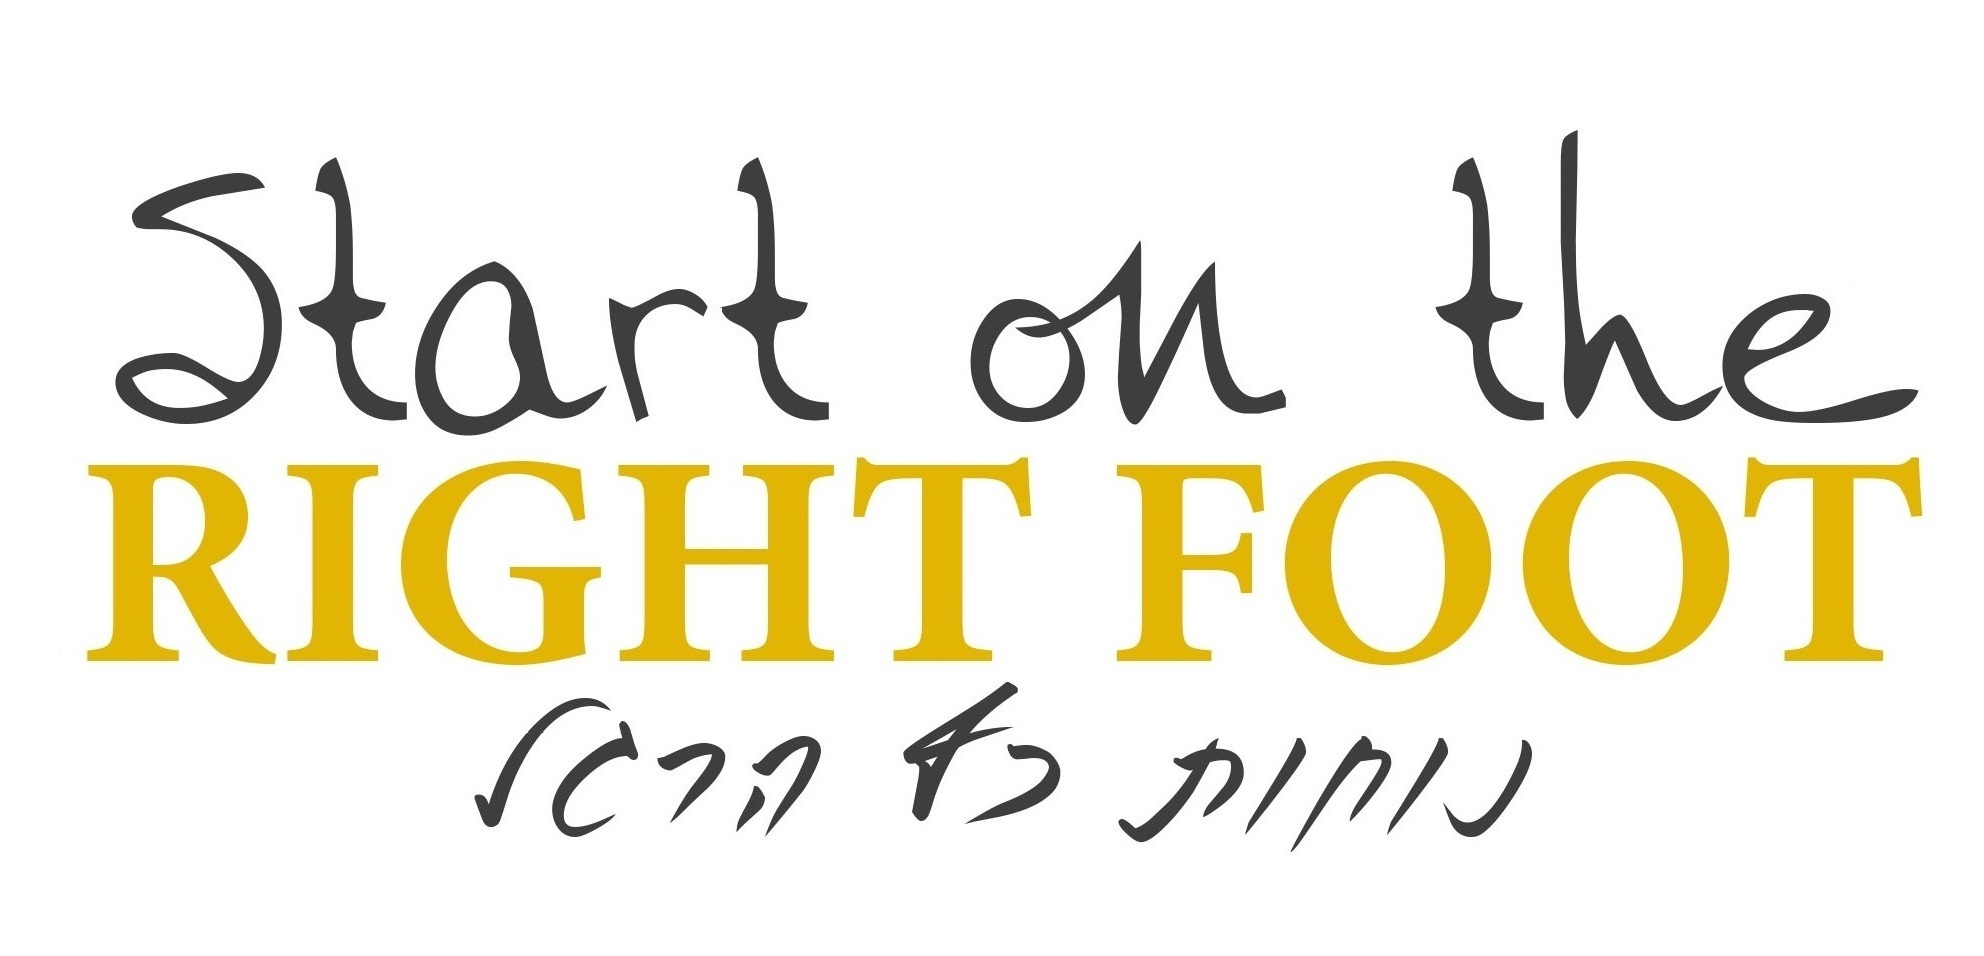 Rightfootlogo